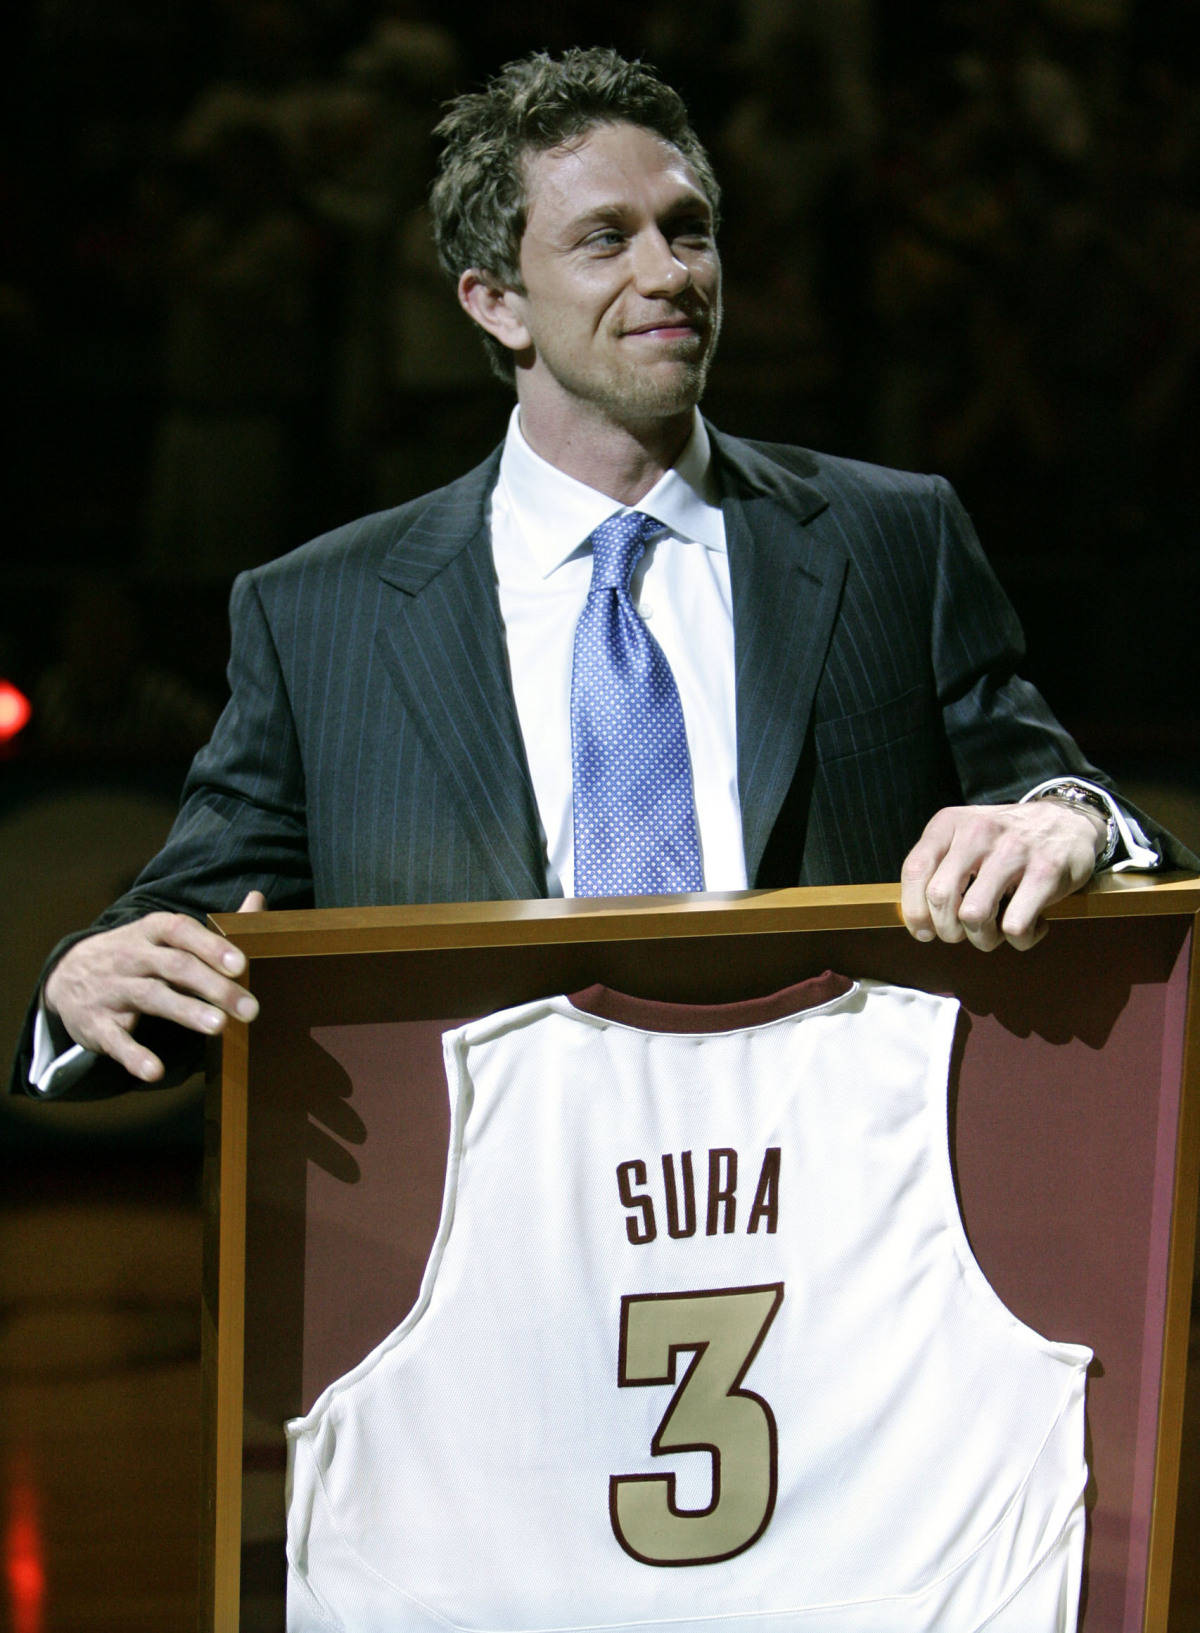 Bob Sura, former Florida State basketball player, smiles as his jersey is retired at halftime of the North Carolina State-Florida State game Saturday, Feb. 24, 2007, in Tallahassee, Fla. Sura played at Florida State from 1991 to 1995, and is a current member of the NBA'S Houston Rockets. (AP Photo/Phil Coale)